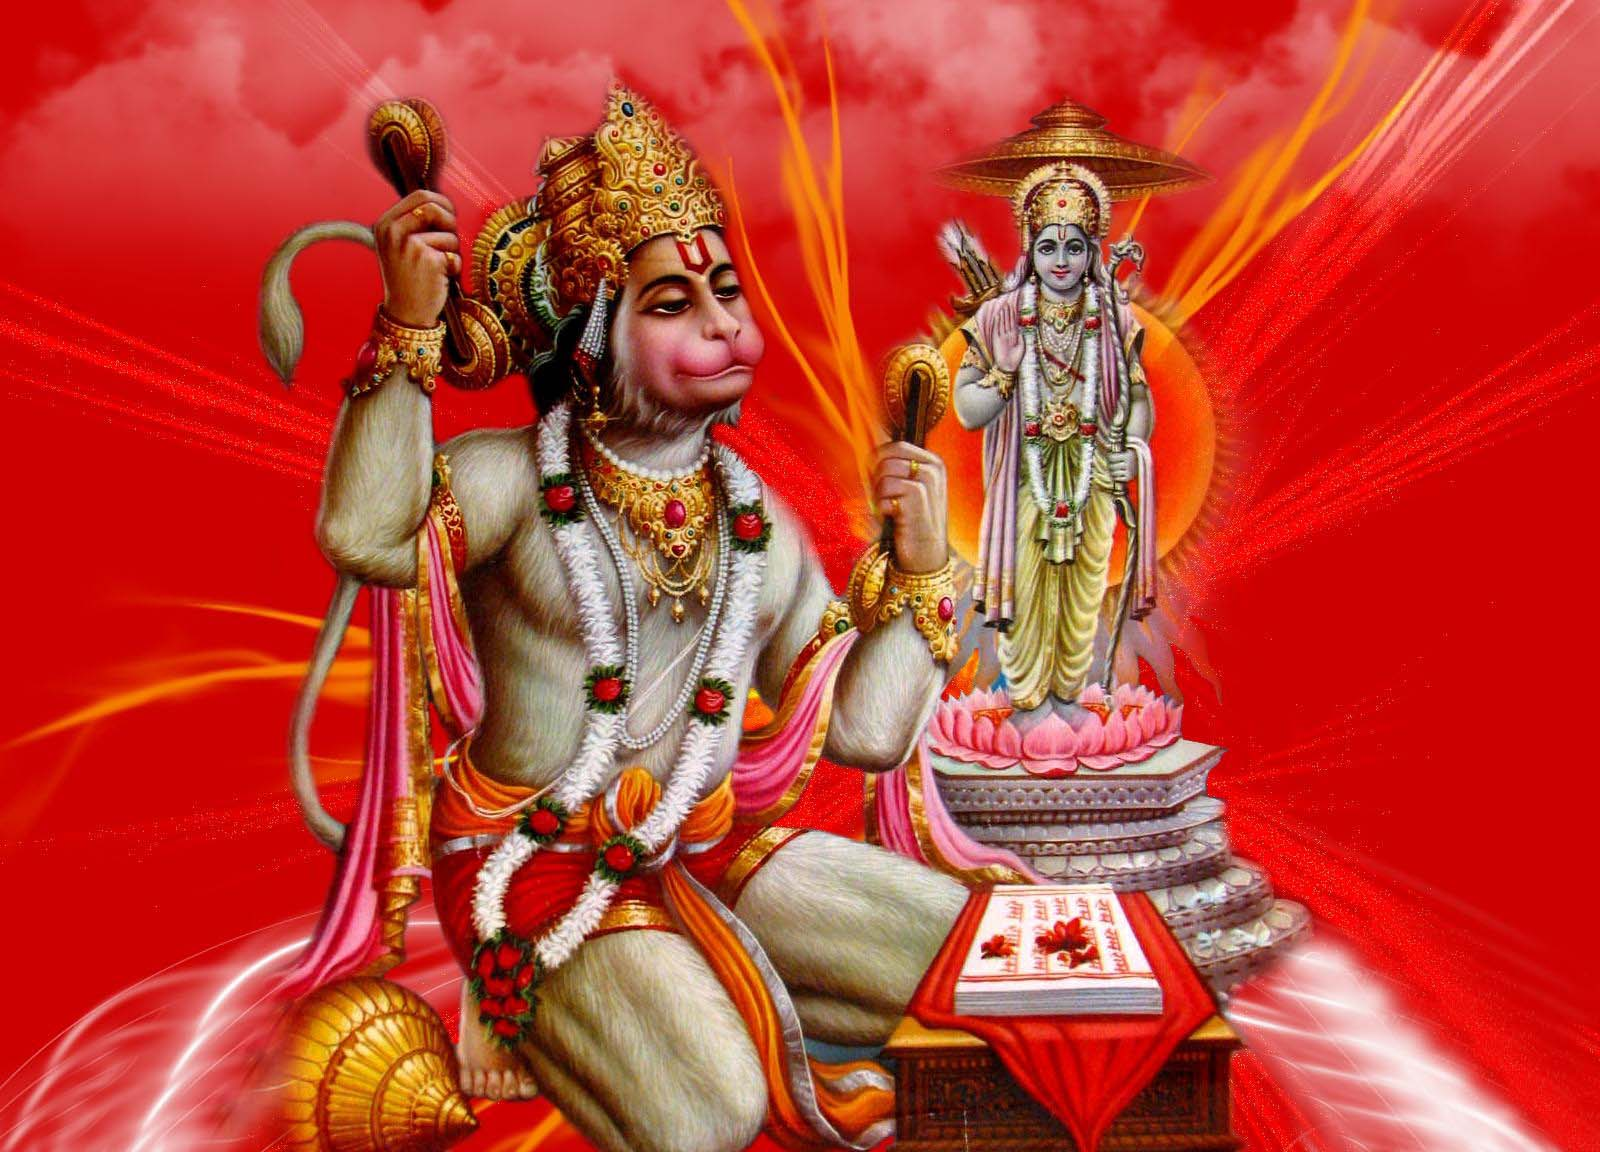 download free new hd images of hanumanji free download | free